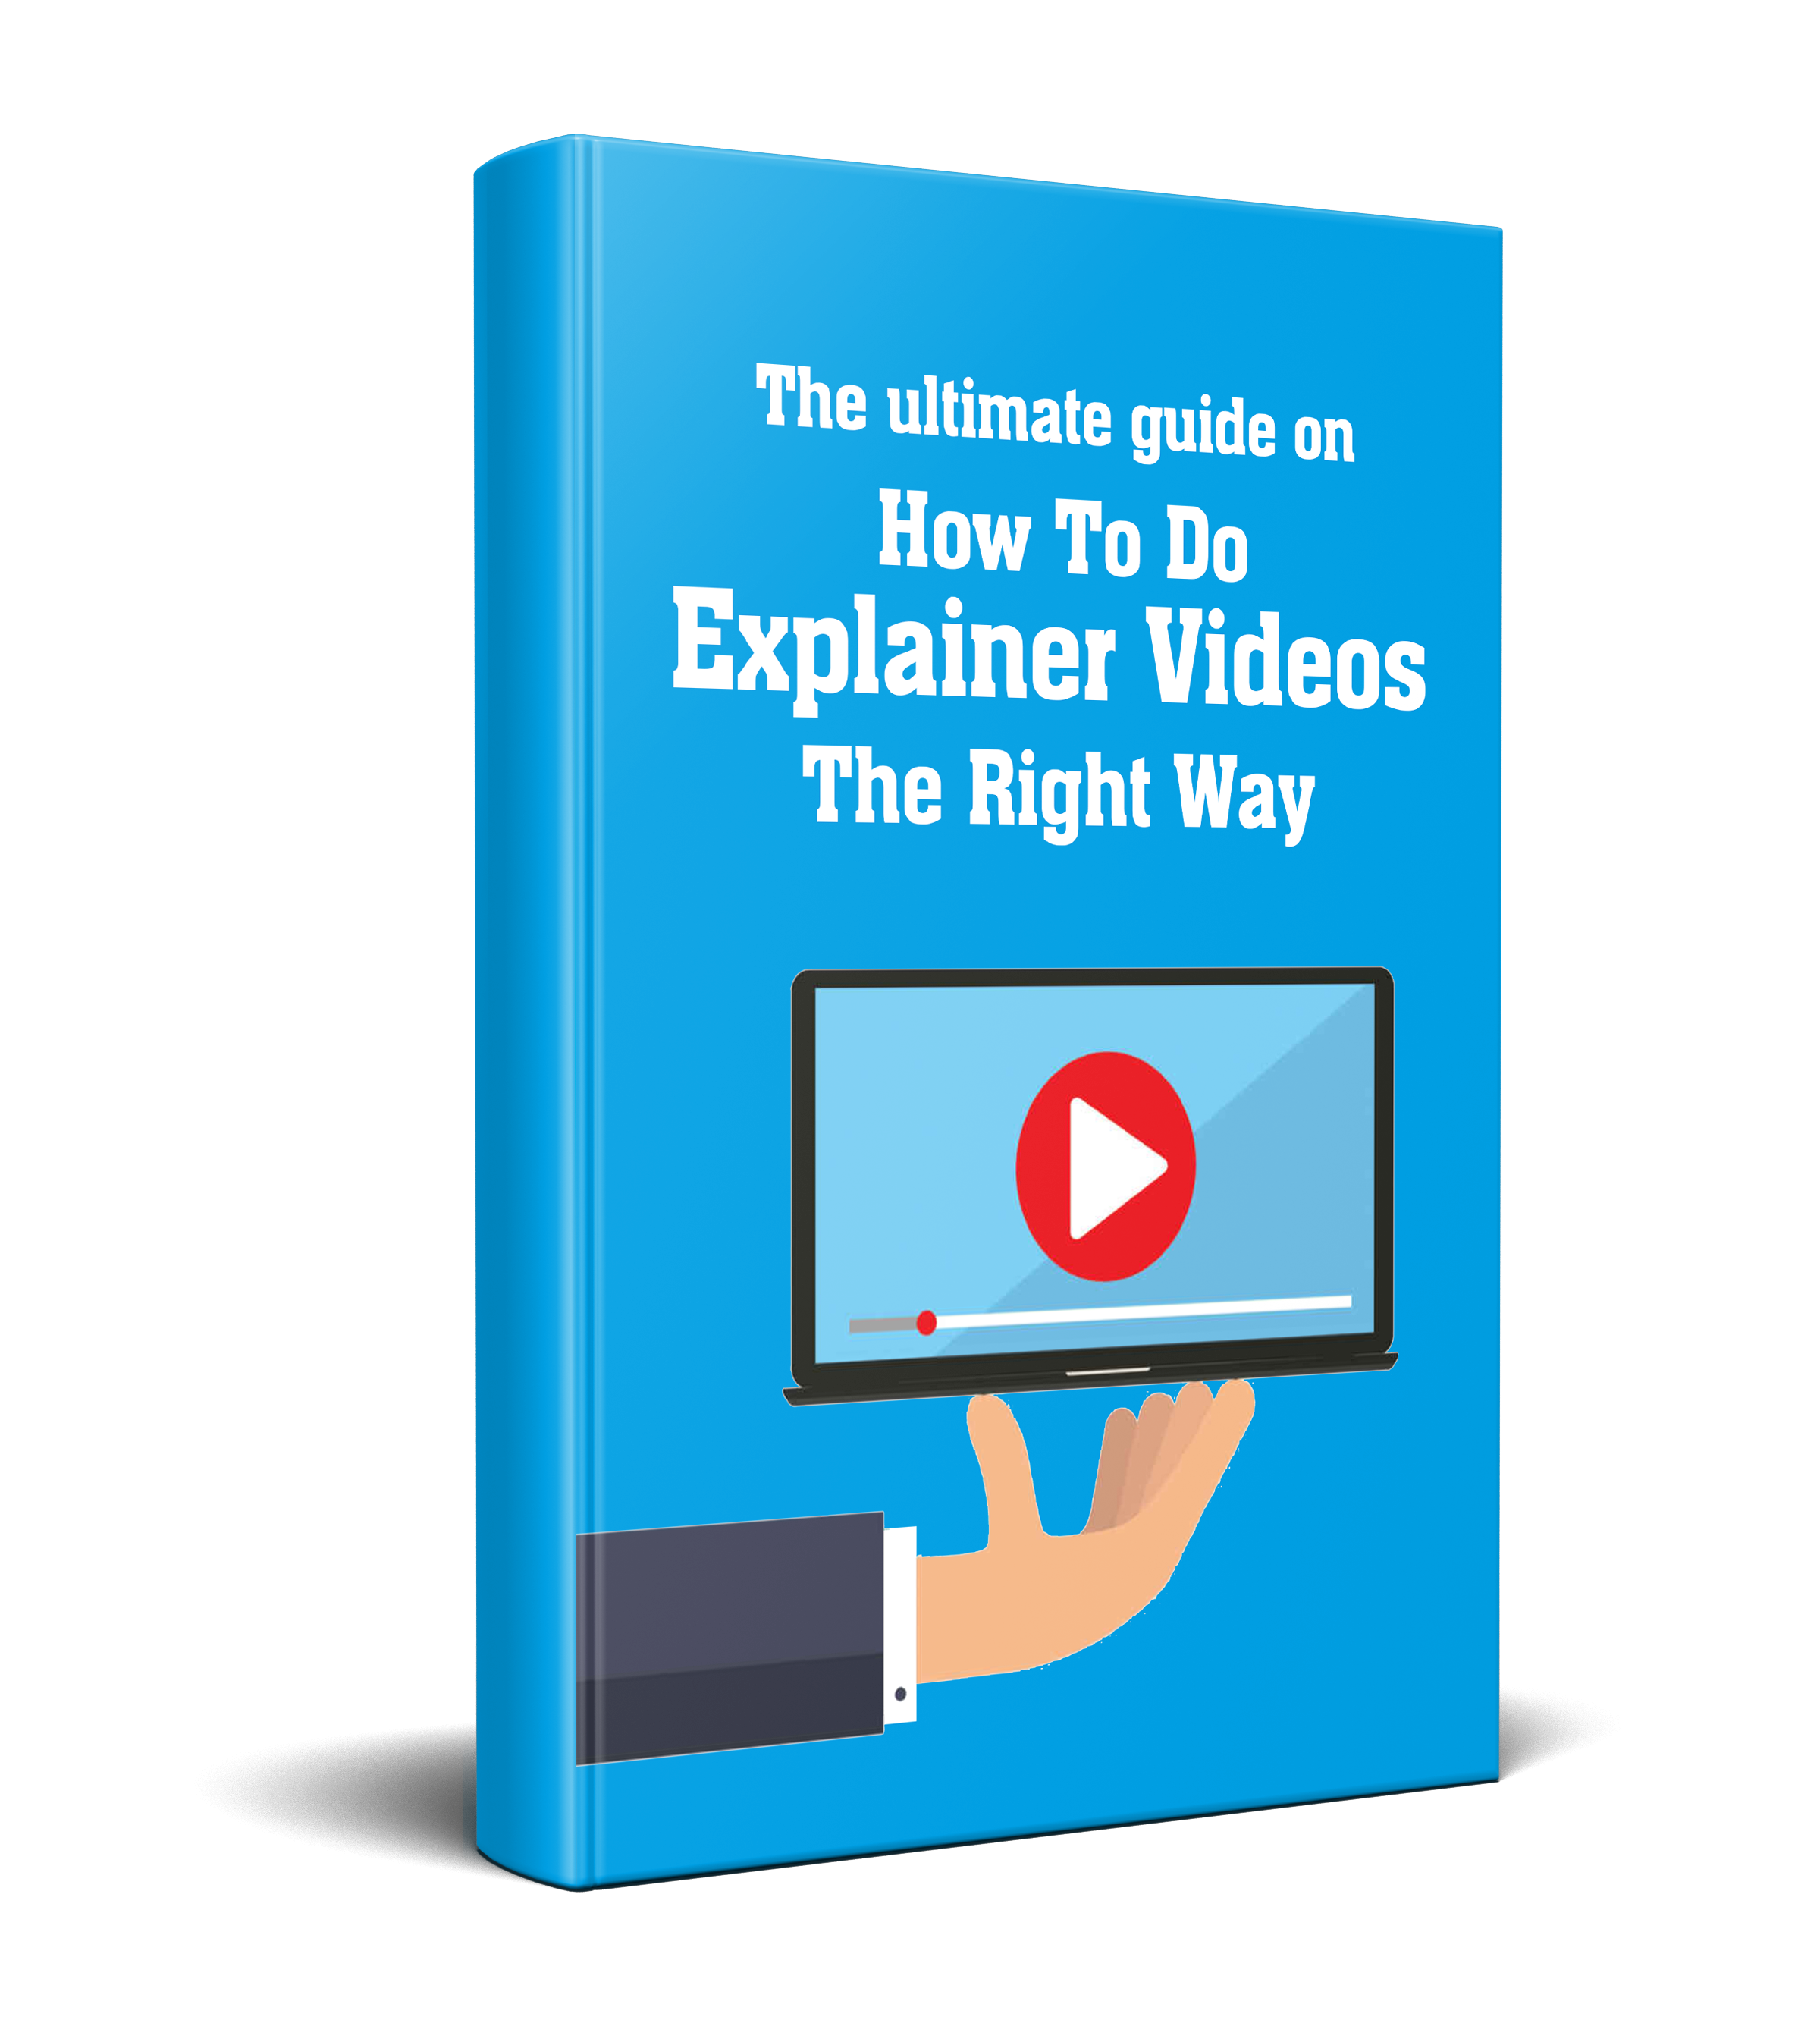 How-To-Do-Explainer-Videos-The-Right-Way-By-Video-Lofty-jpg